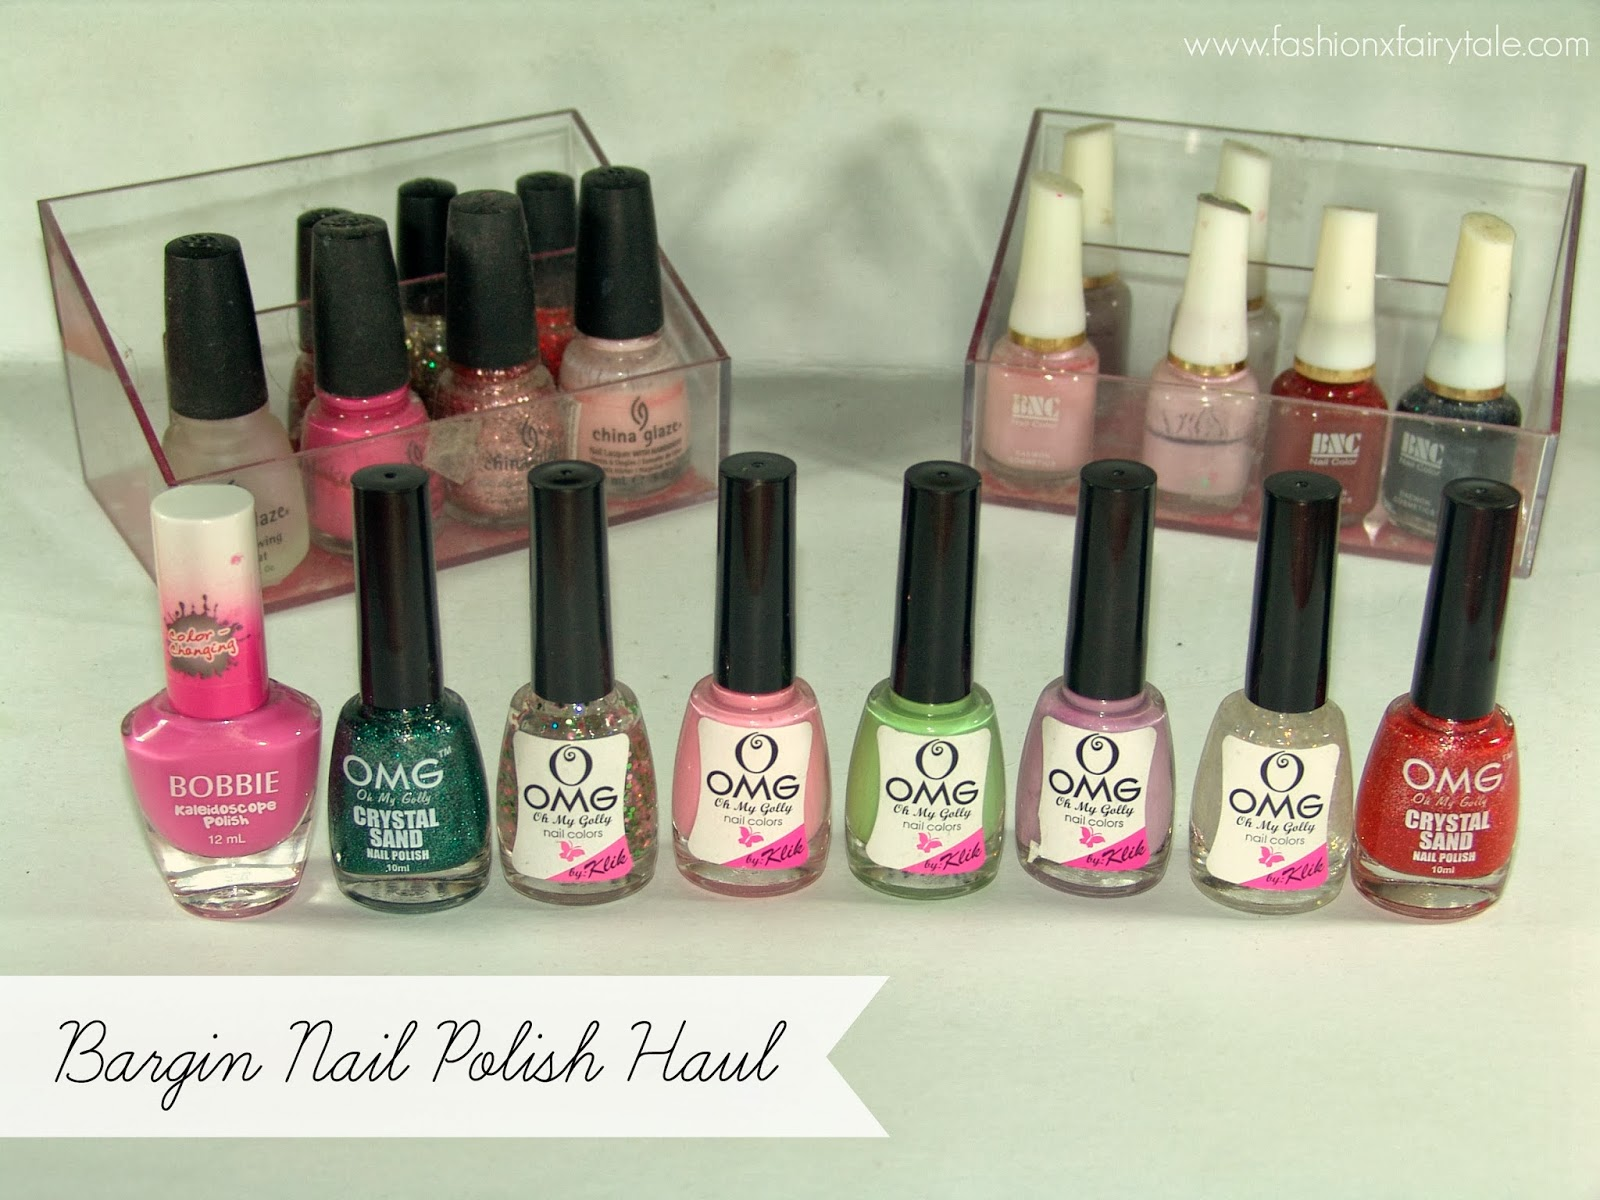 Bargain Nail Polish Haul